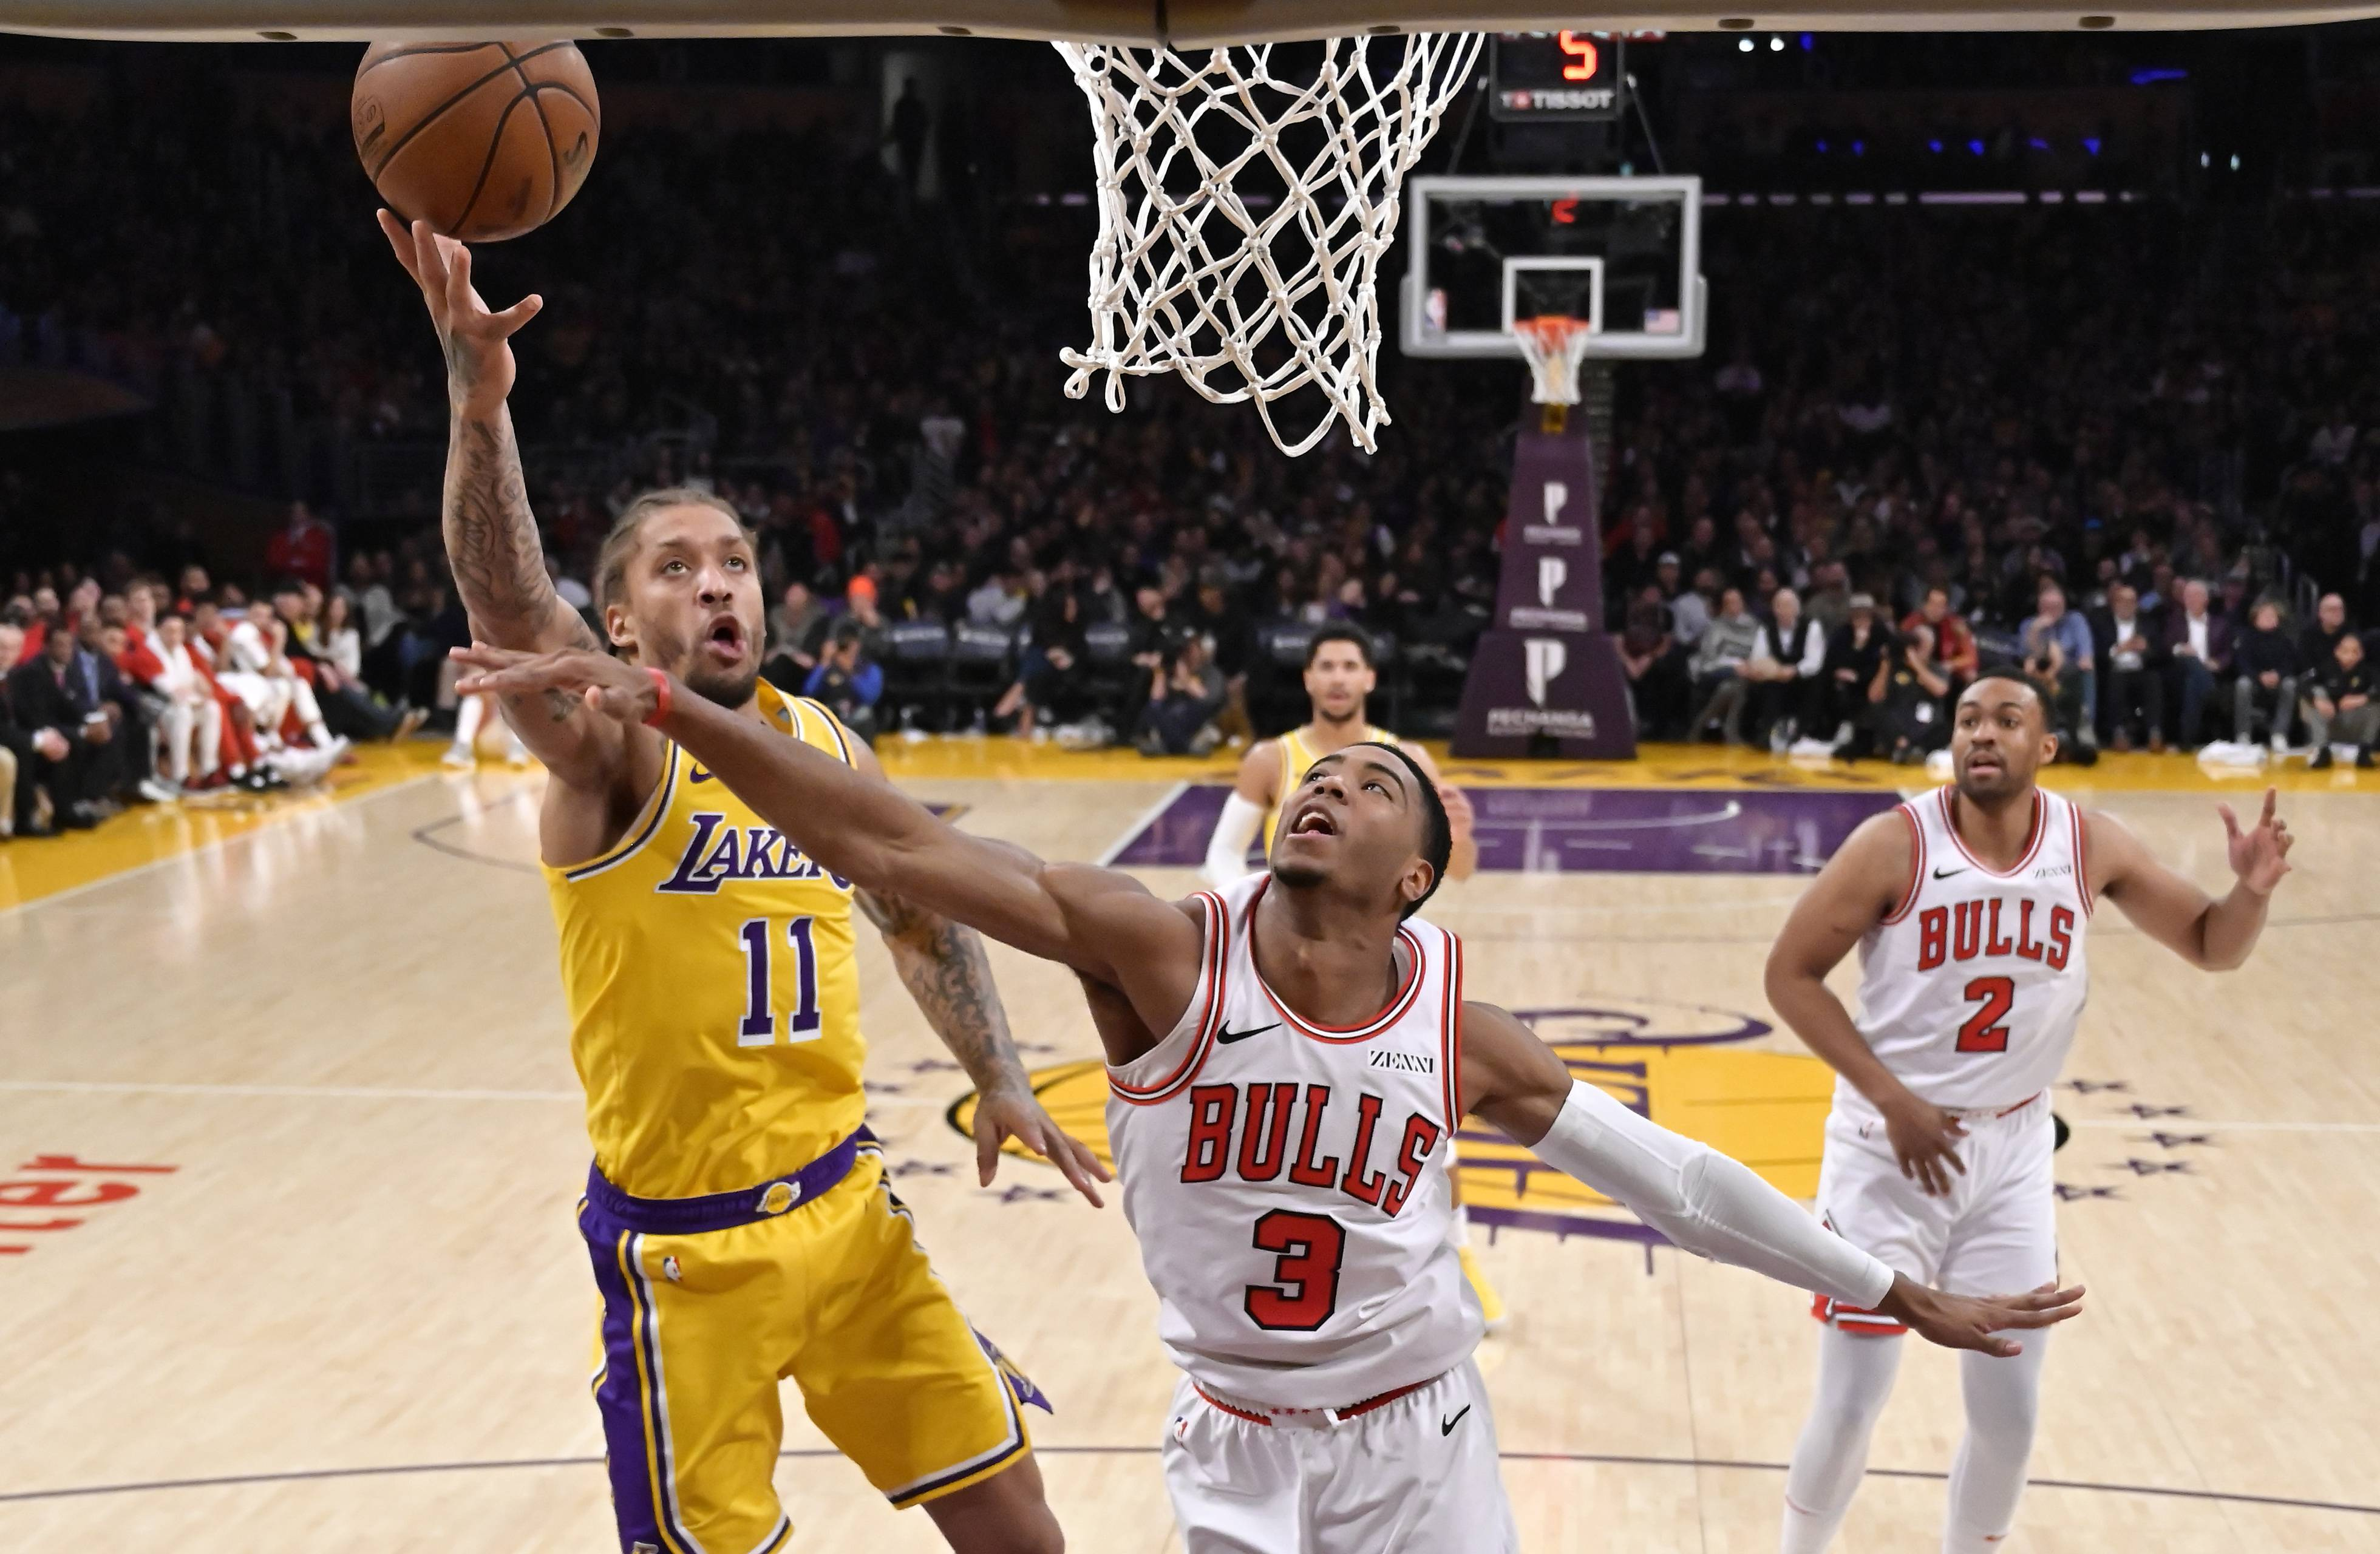 Los Angeles Lakers forward Michael Beasley, left, shoots as Bulls guard Shaquille Harrison, center, defends and Jabari Parker looks on during Tuesday's loss. Parker was back in the rotation for Tuesday's 107-100 loss to the Los Angeles Lakers, and Robin Lopez was out. Things could change again for the Bulls, though, since Wendell Carter injured his left thumb in the game.